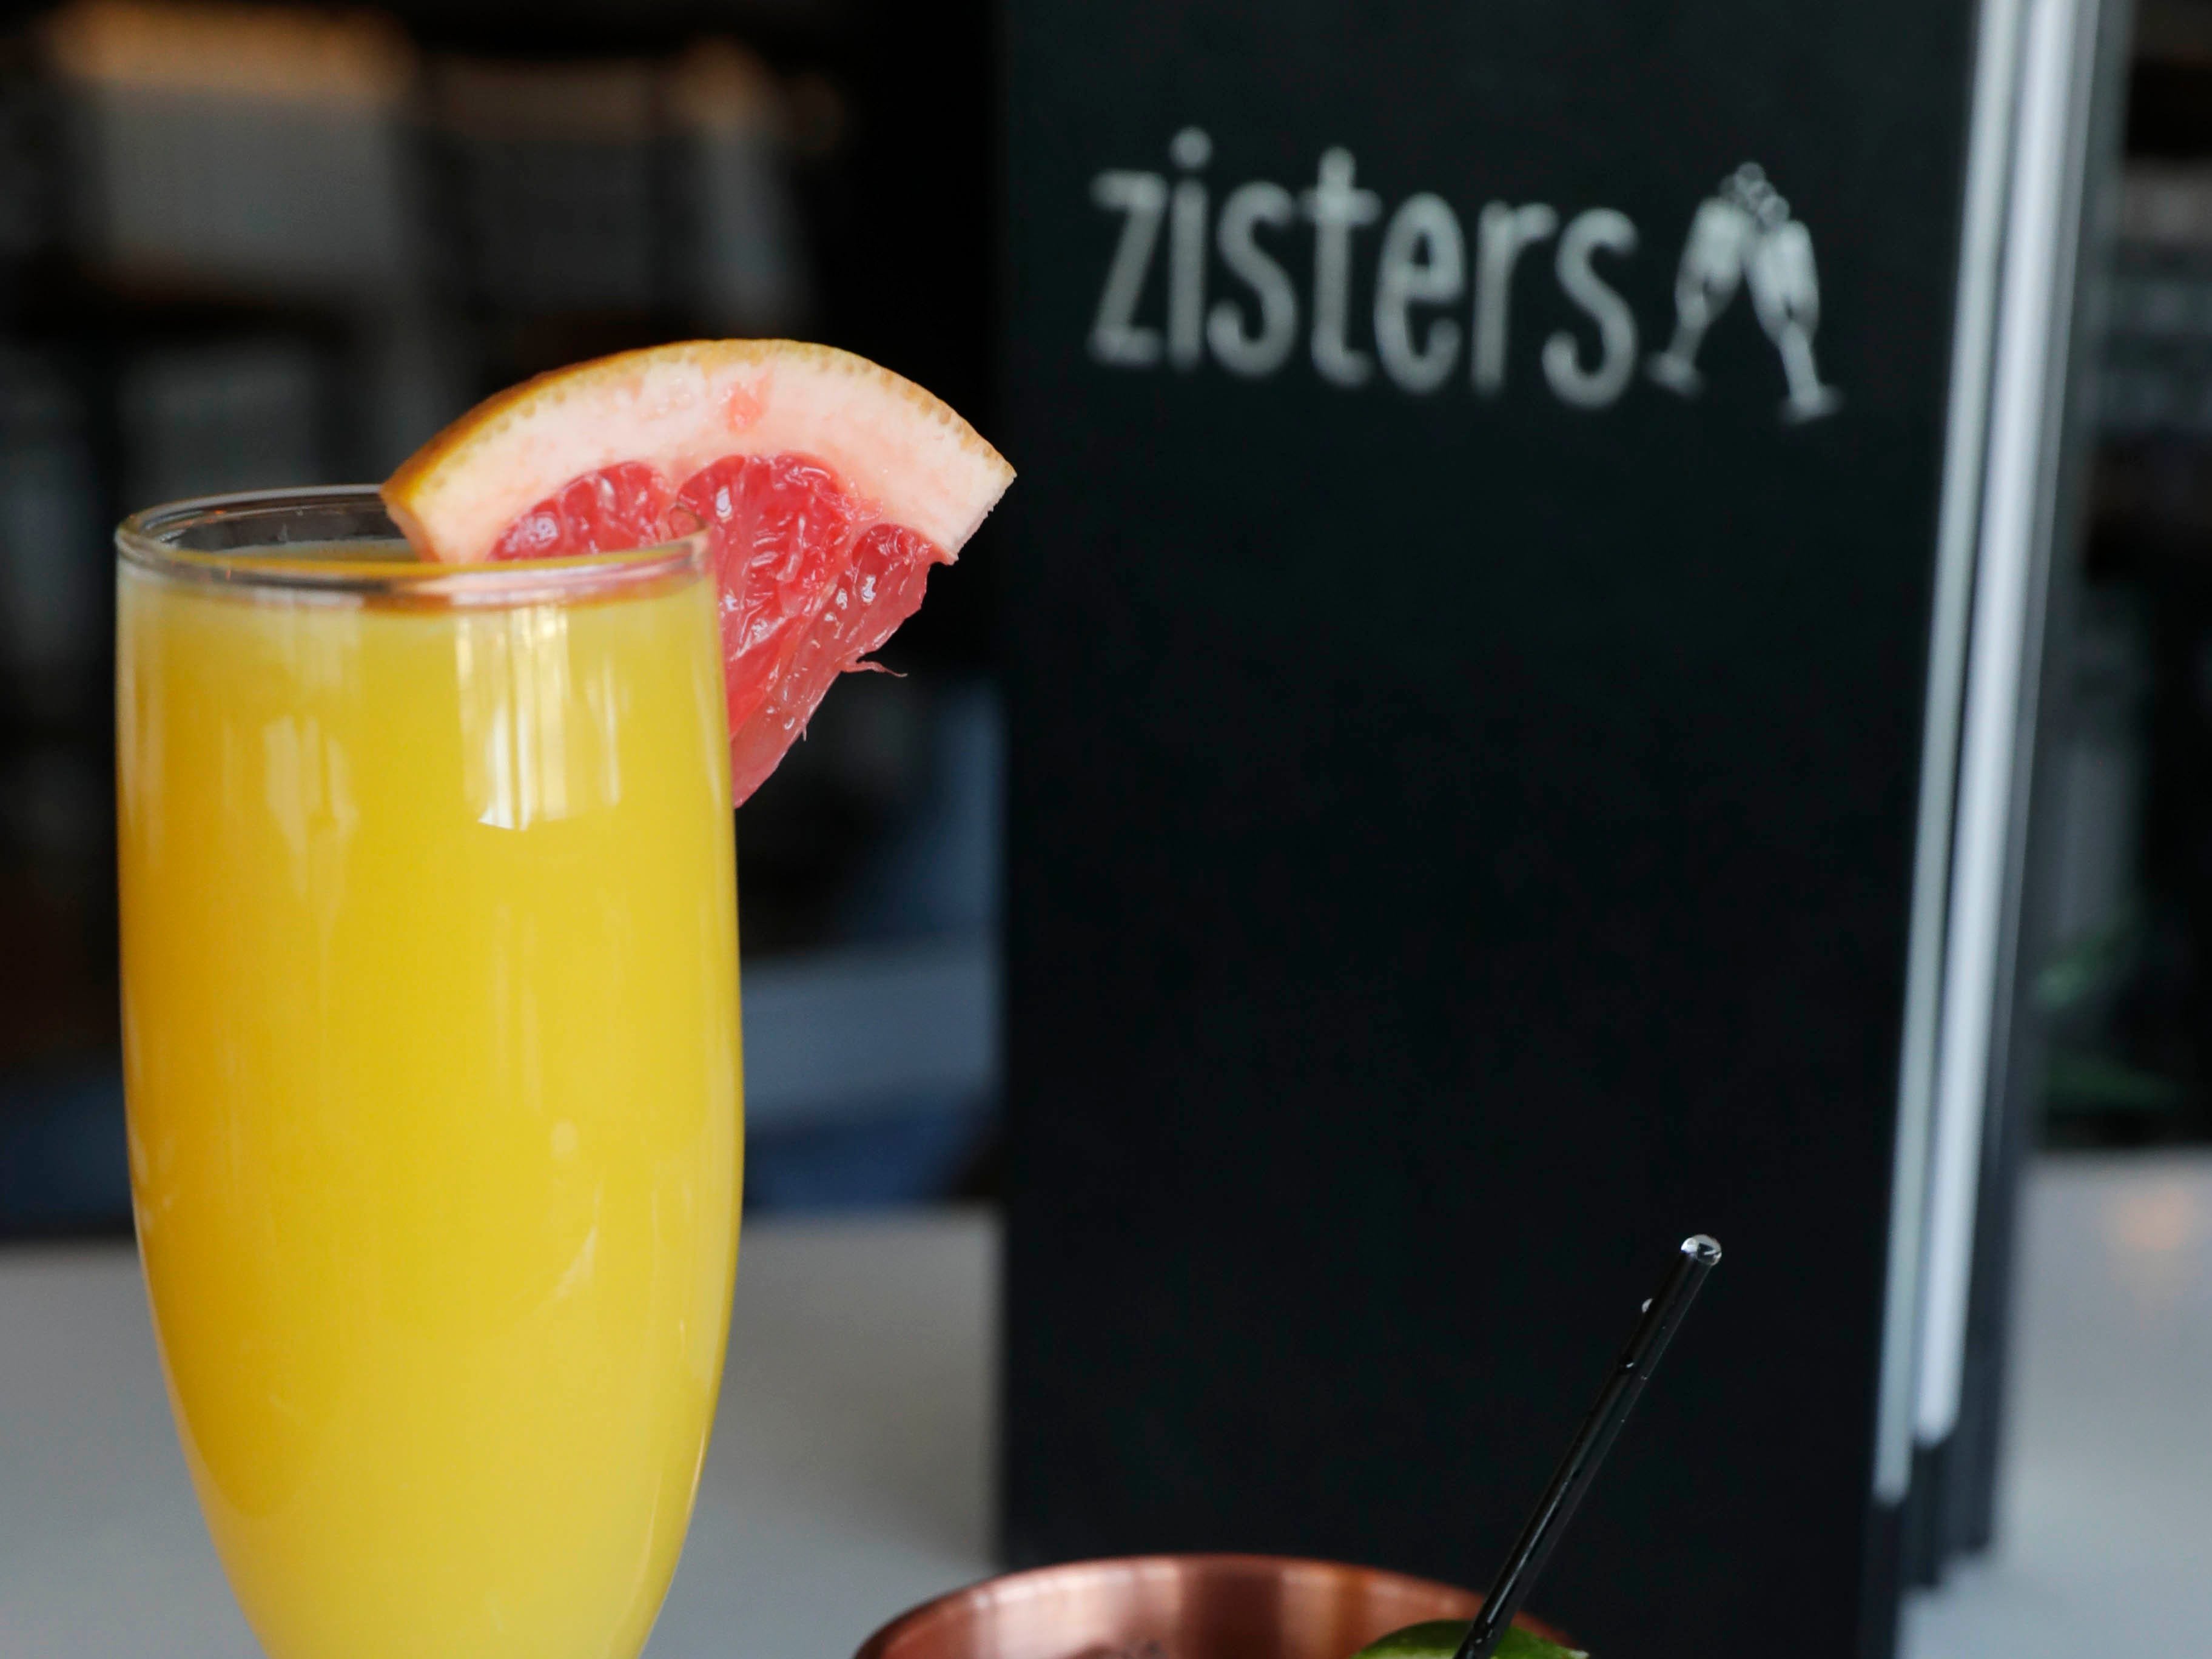 Grapefruit Mimosa and a Champers Mule  are popular drinks at Zisters in Elm Grove.